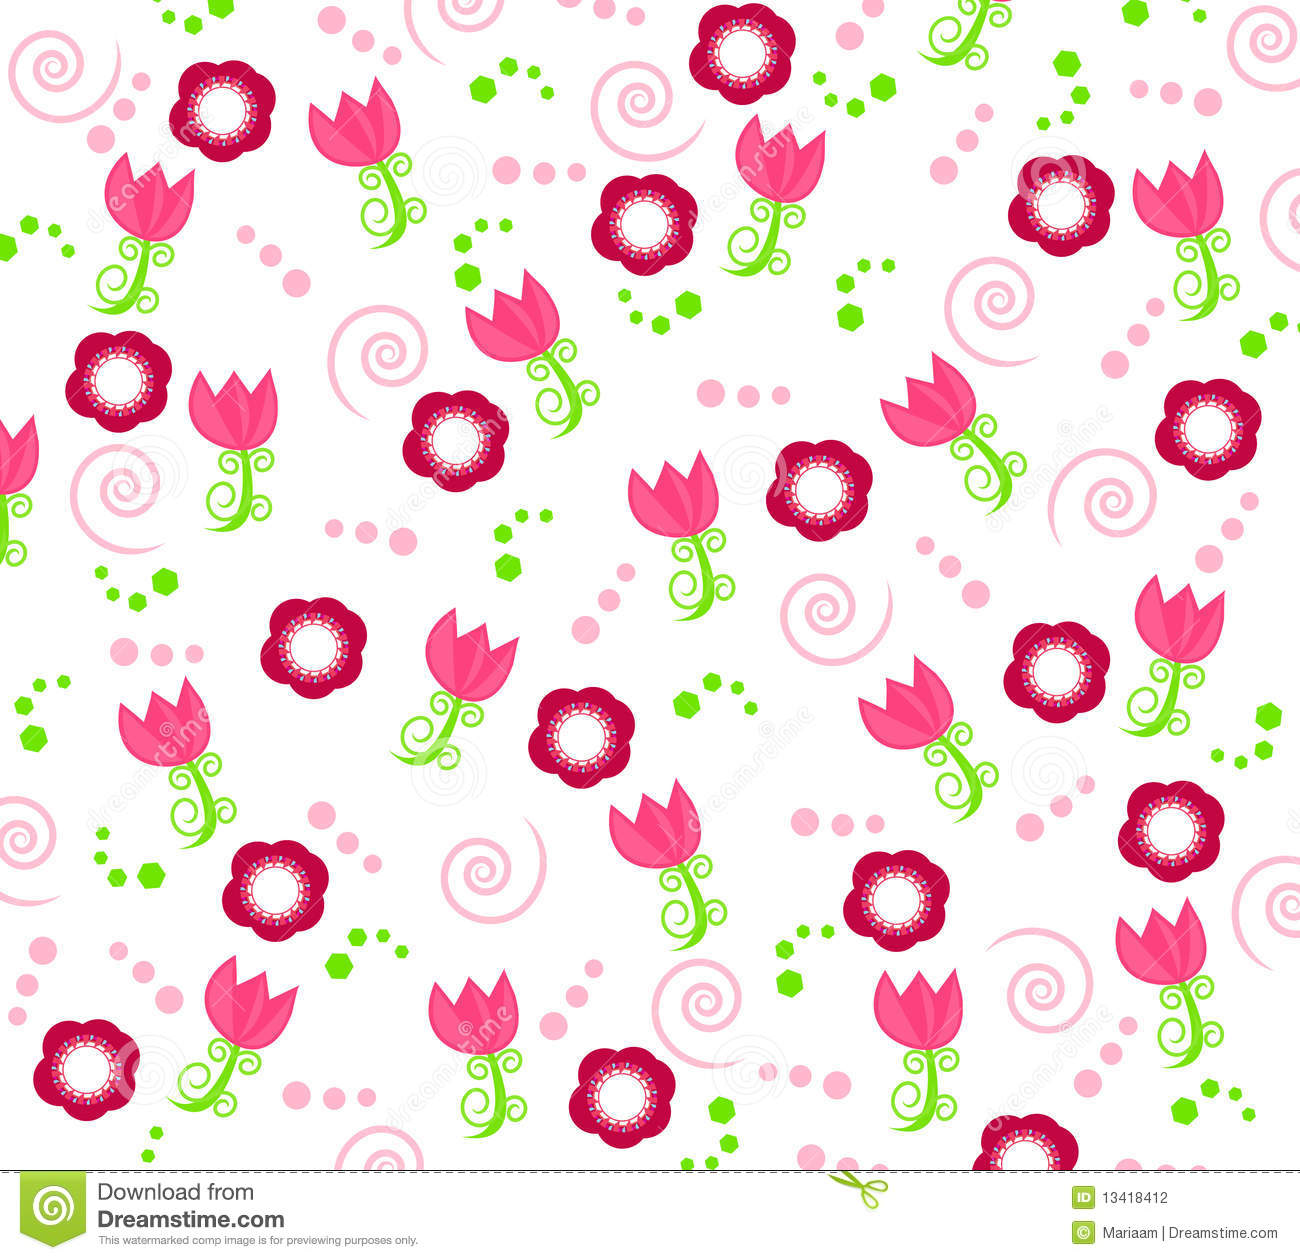 Wallpaper With Flower Ornaments Stock Illustration Illustration Of